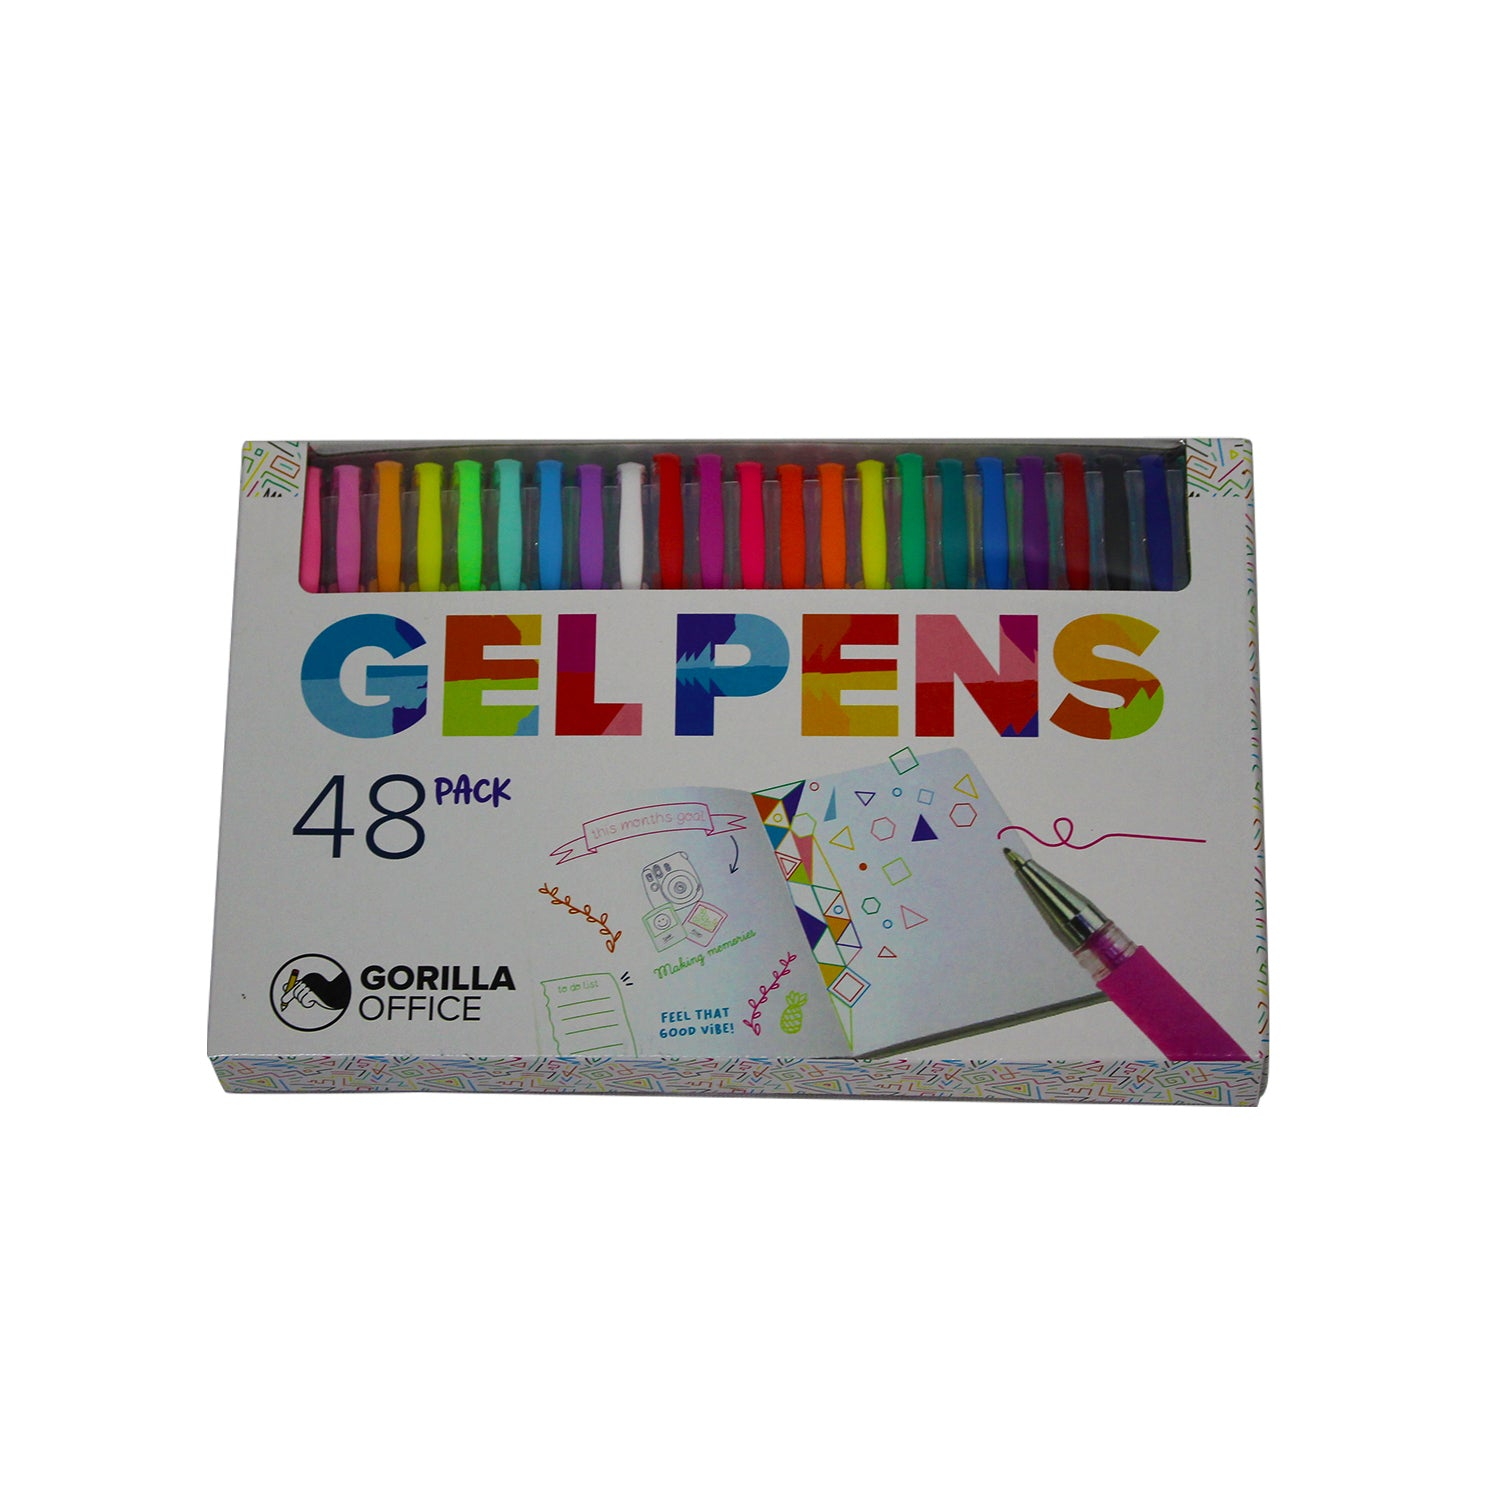 Gorilla Office: Gel Pens - 48 Pack